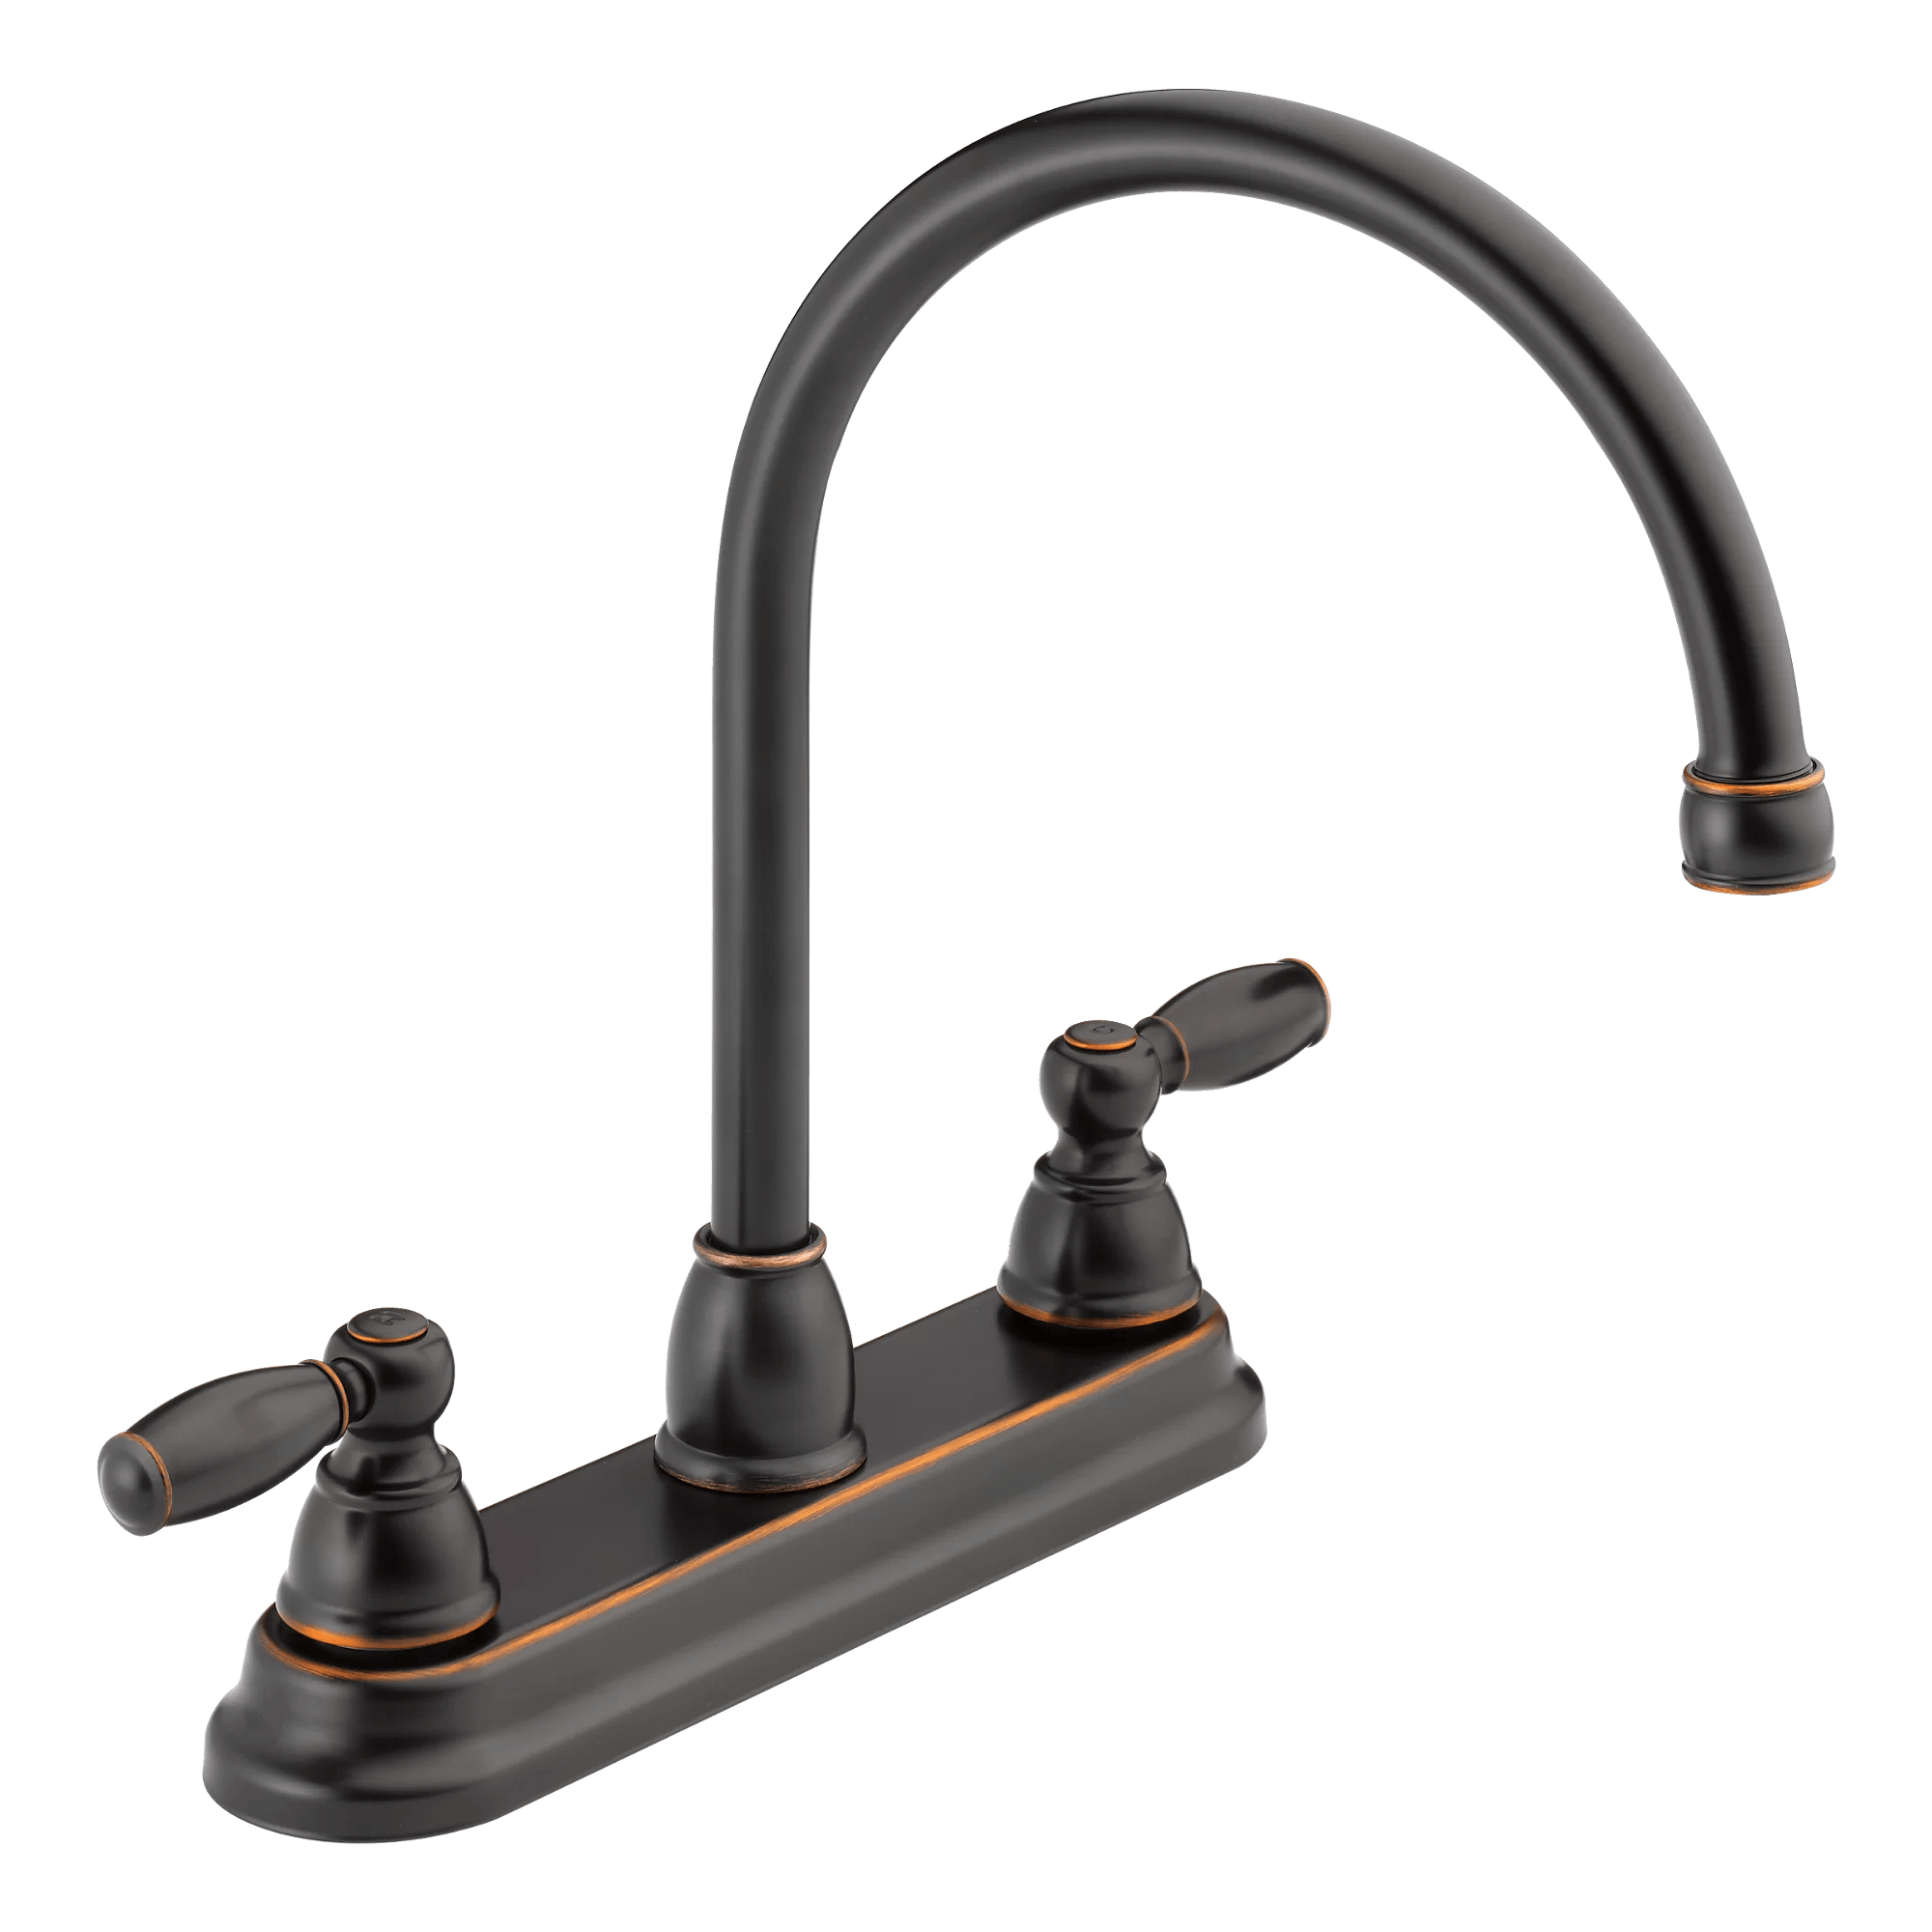 Peerless Faucets Apex Double Handle Kitchen Faucet  eBay